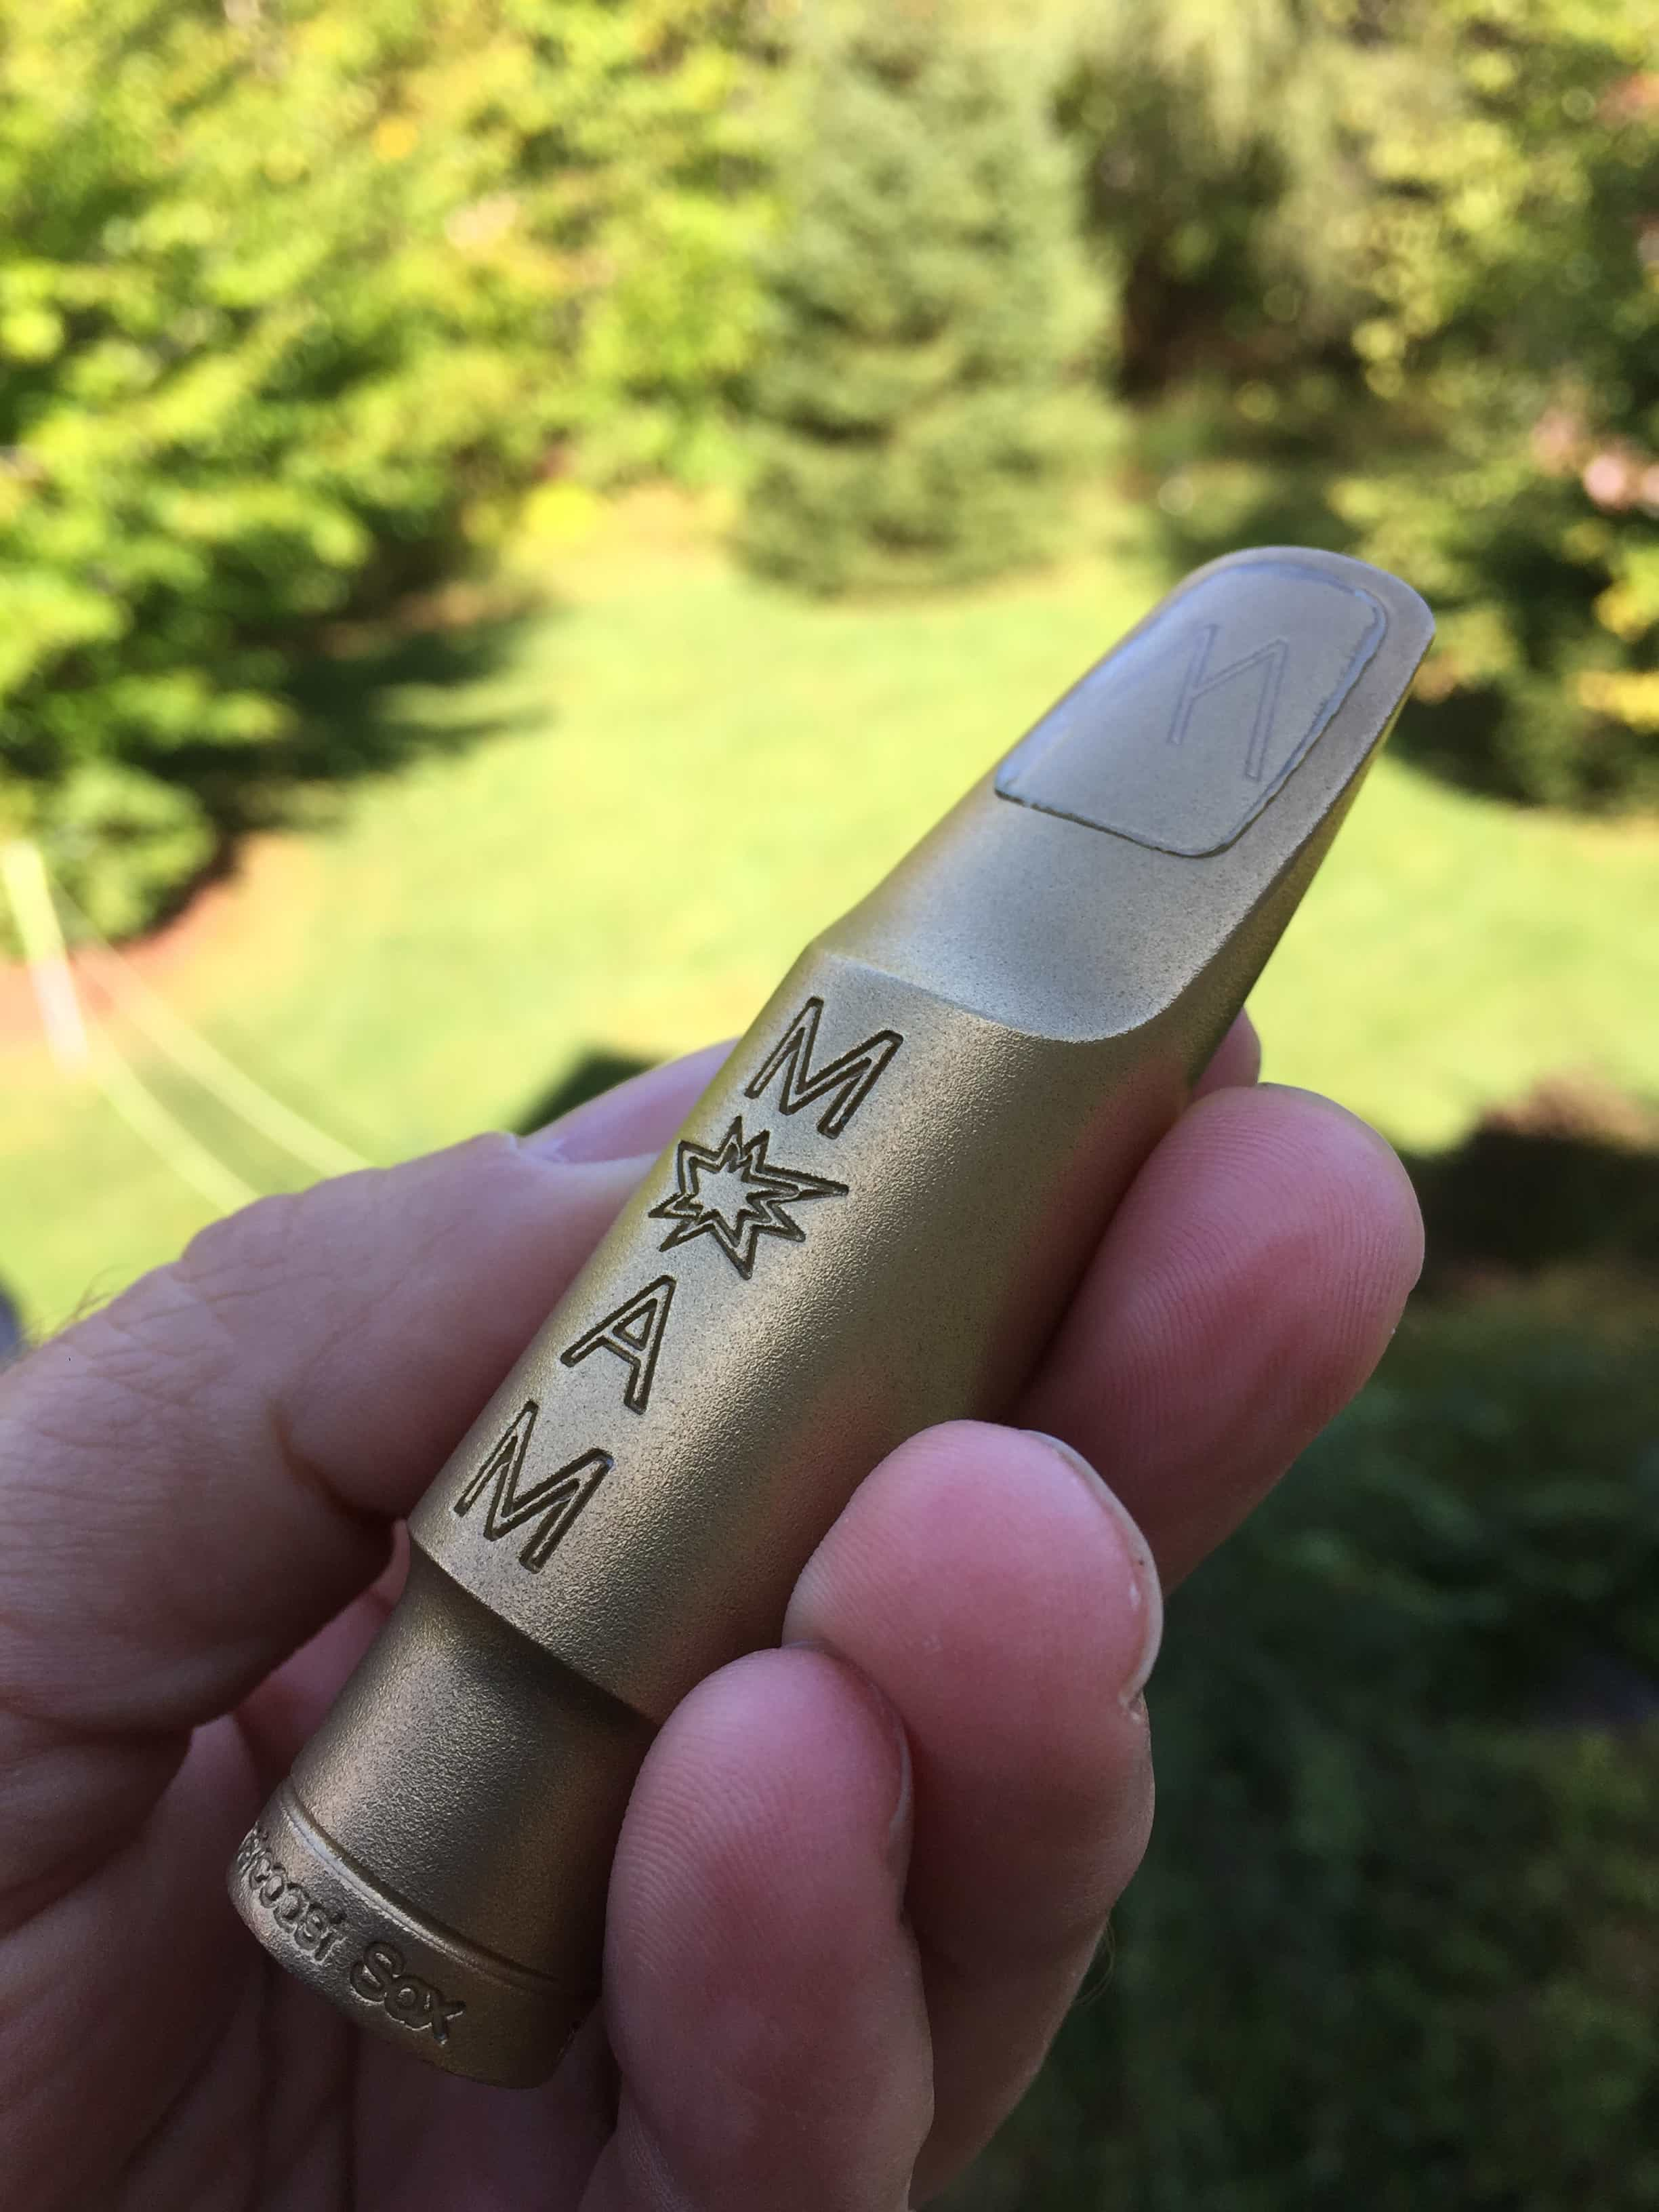 Westcoast Sax MOAM Alto Saxophone Mouthpiece Review